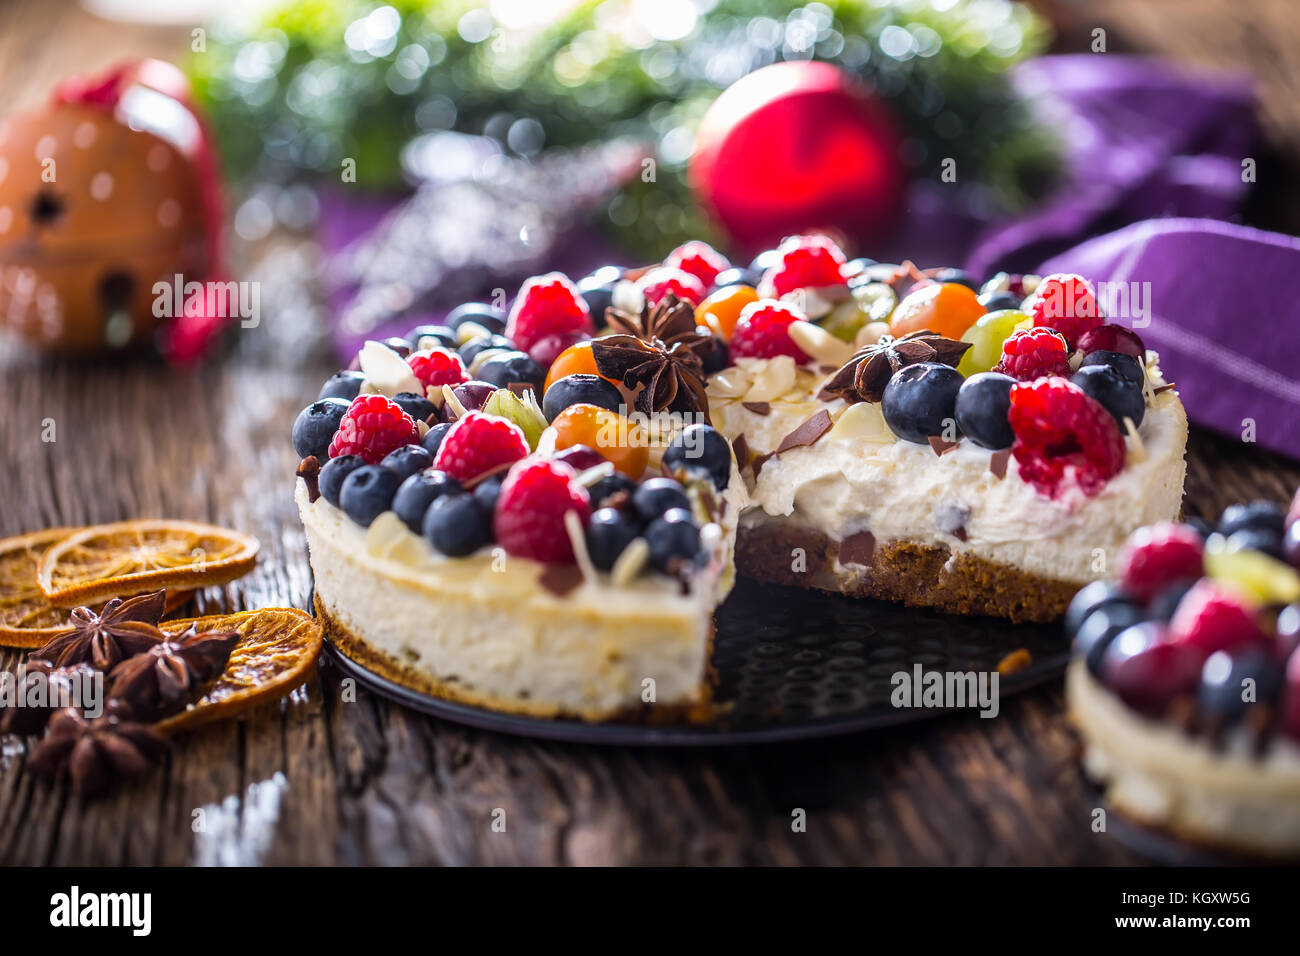 Cheescake with fresh fruit berries strawberries raspberries and star anise. Christmas cheescake with christmas decoration. - Stock Image